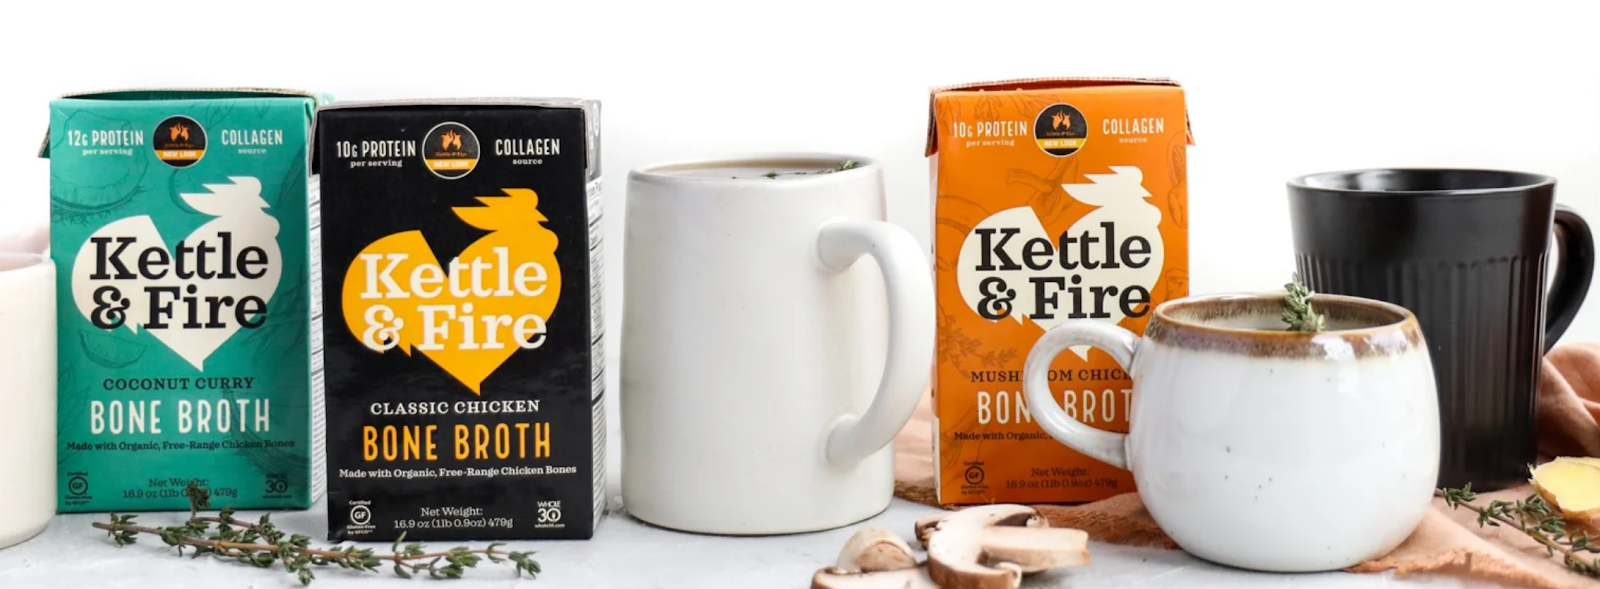 Bone broth selection from Kettle & Fire | Influencer Marketing Programs